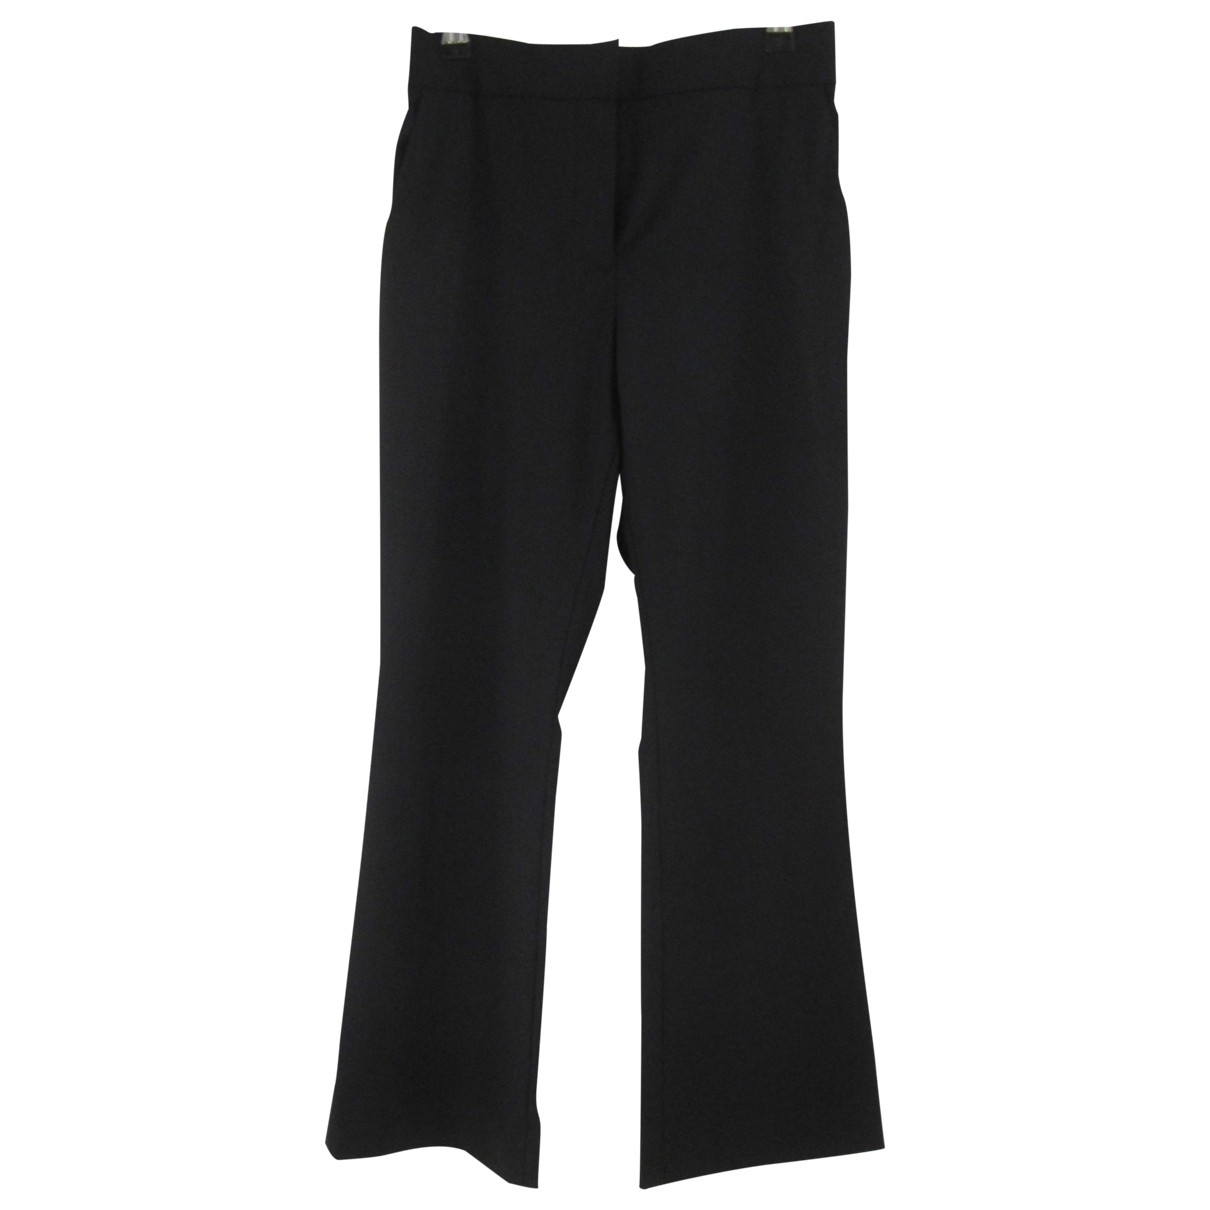 Cos \N Black Wool Trousers for Women XS International